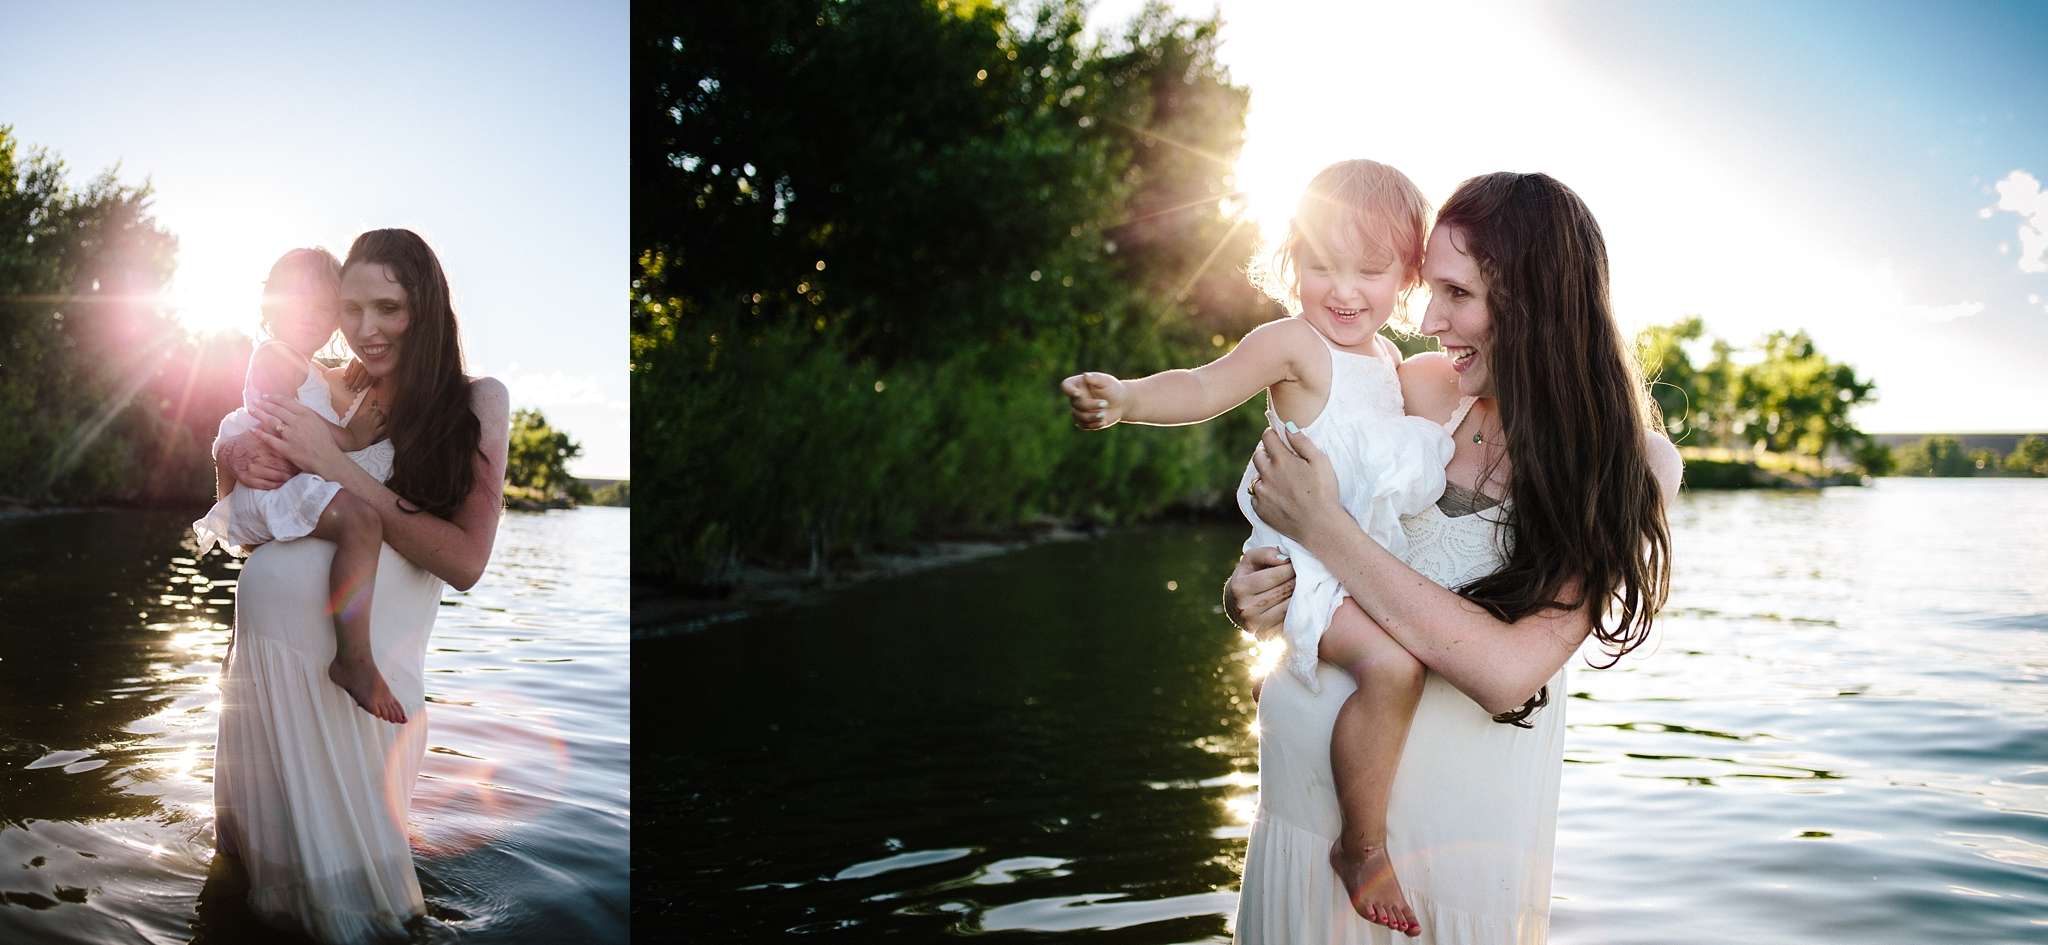 Family Maternity Session in Denver CO